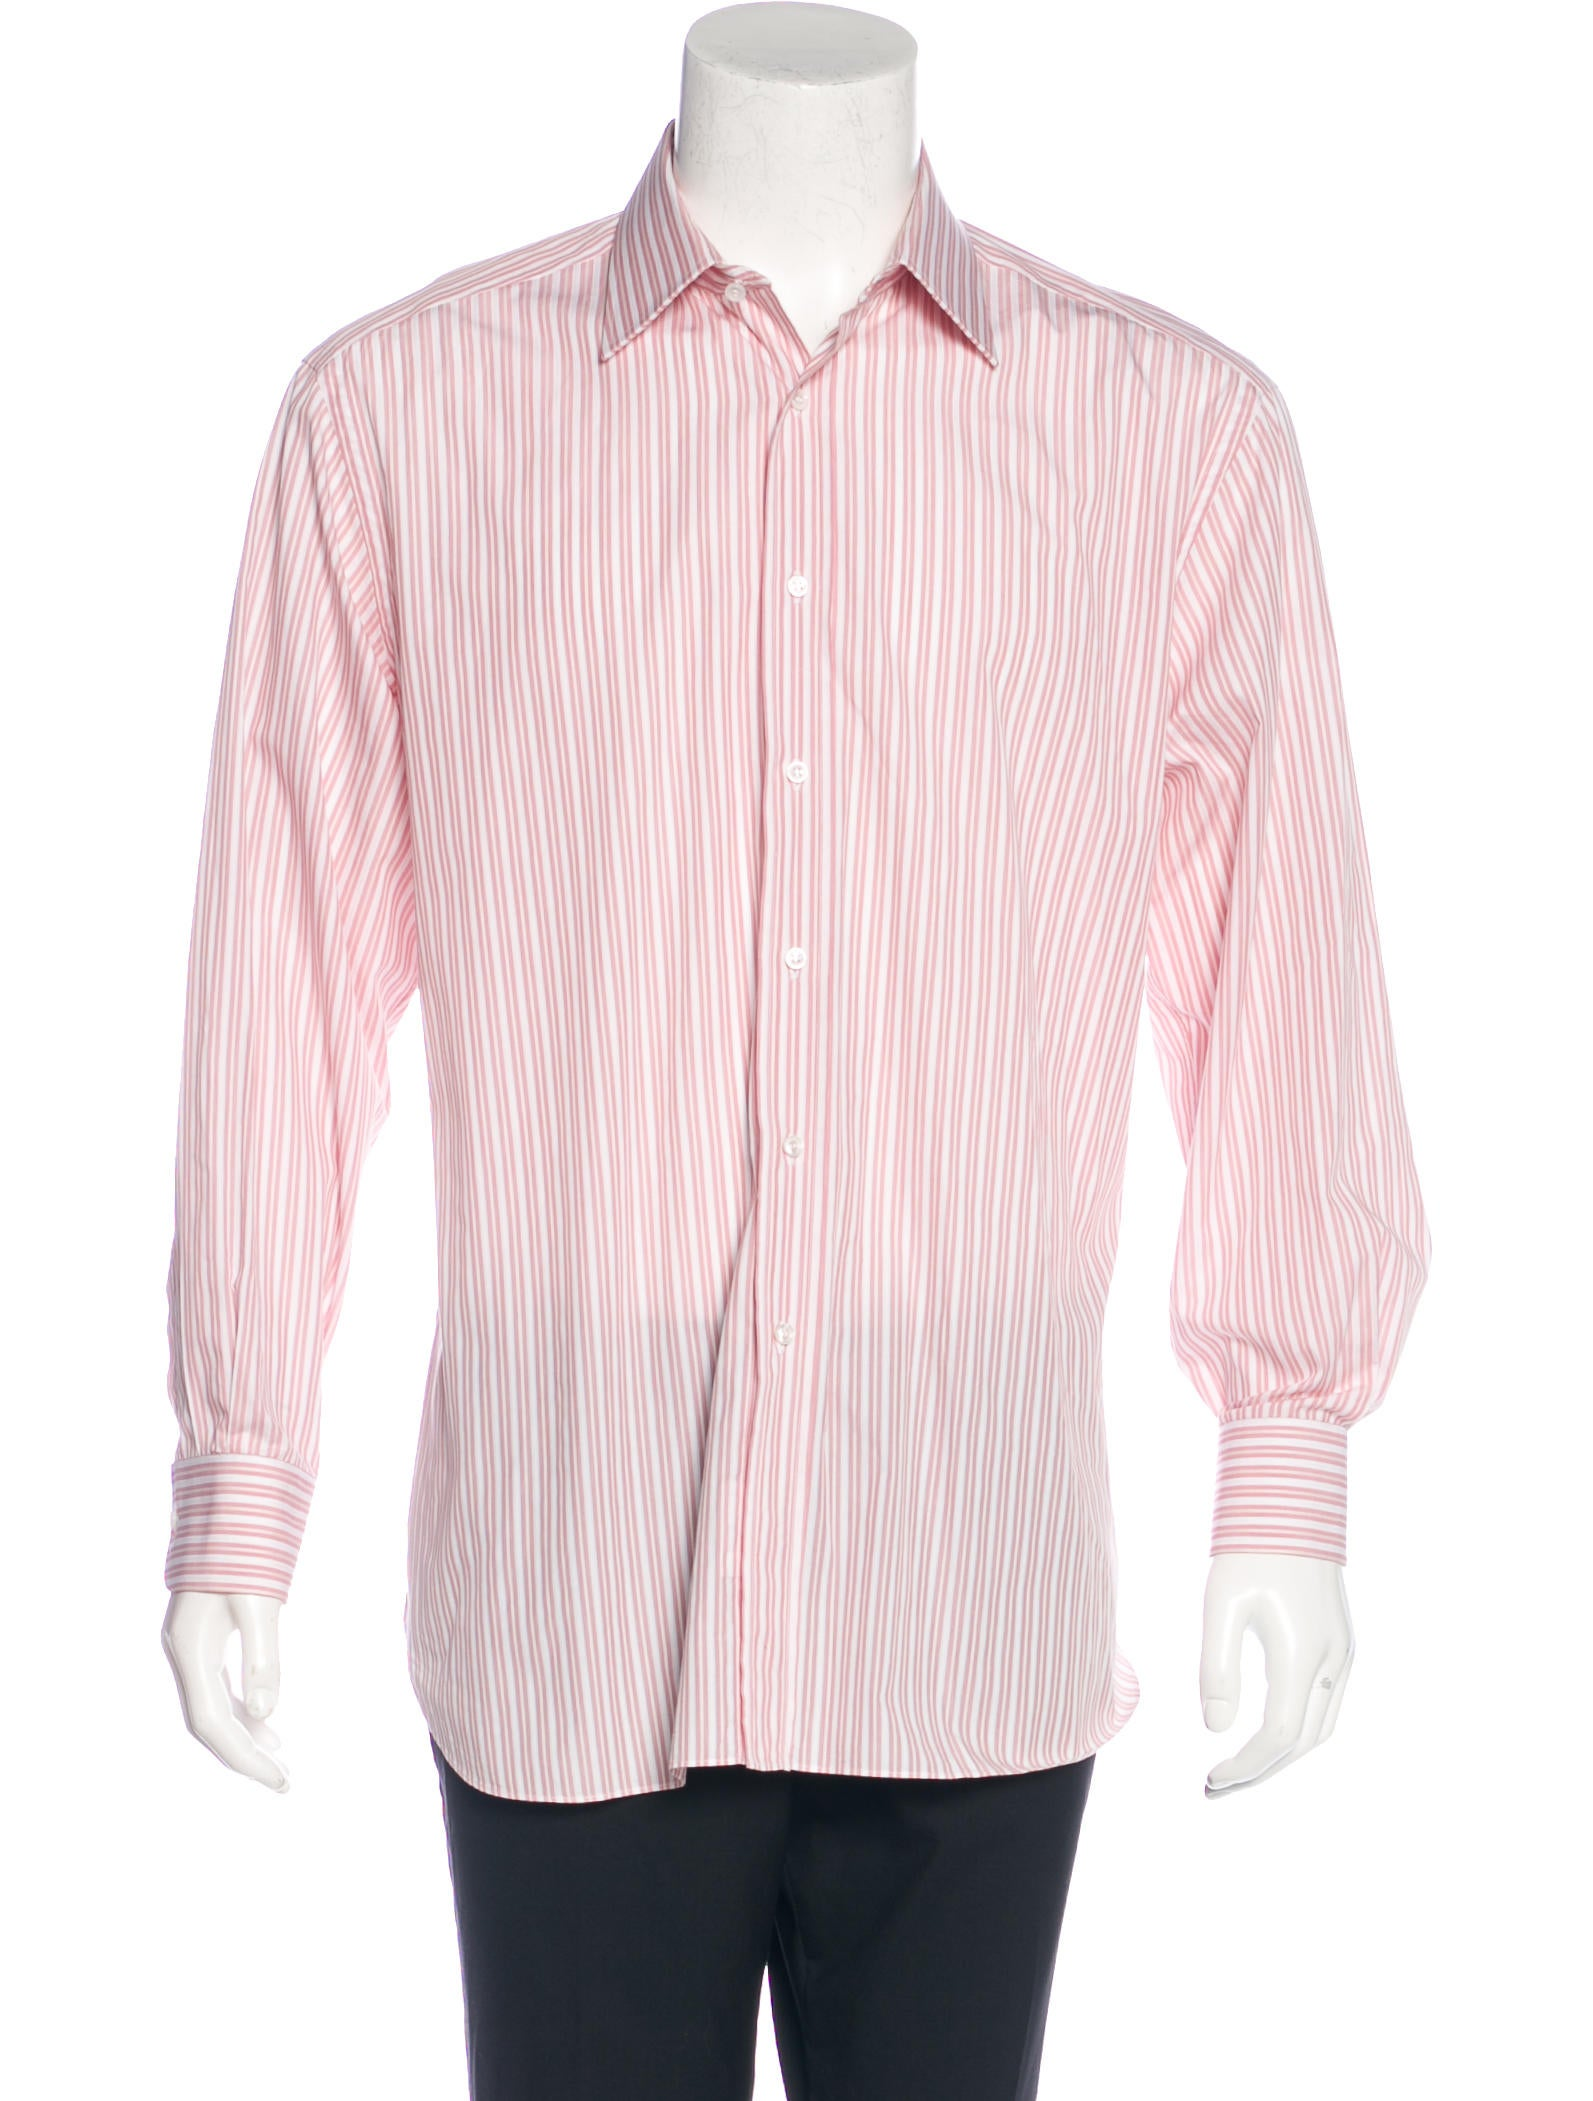 Brioni Striped French Cuff Shirt Clothing Bro21850